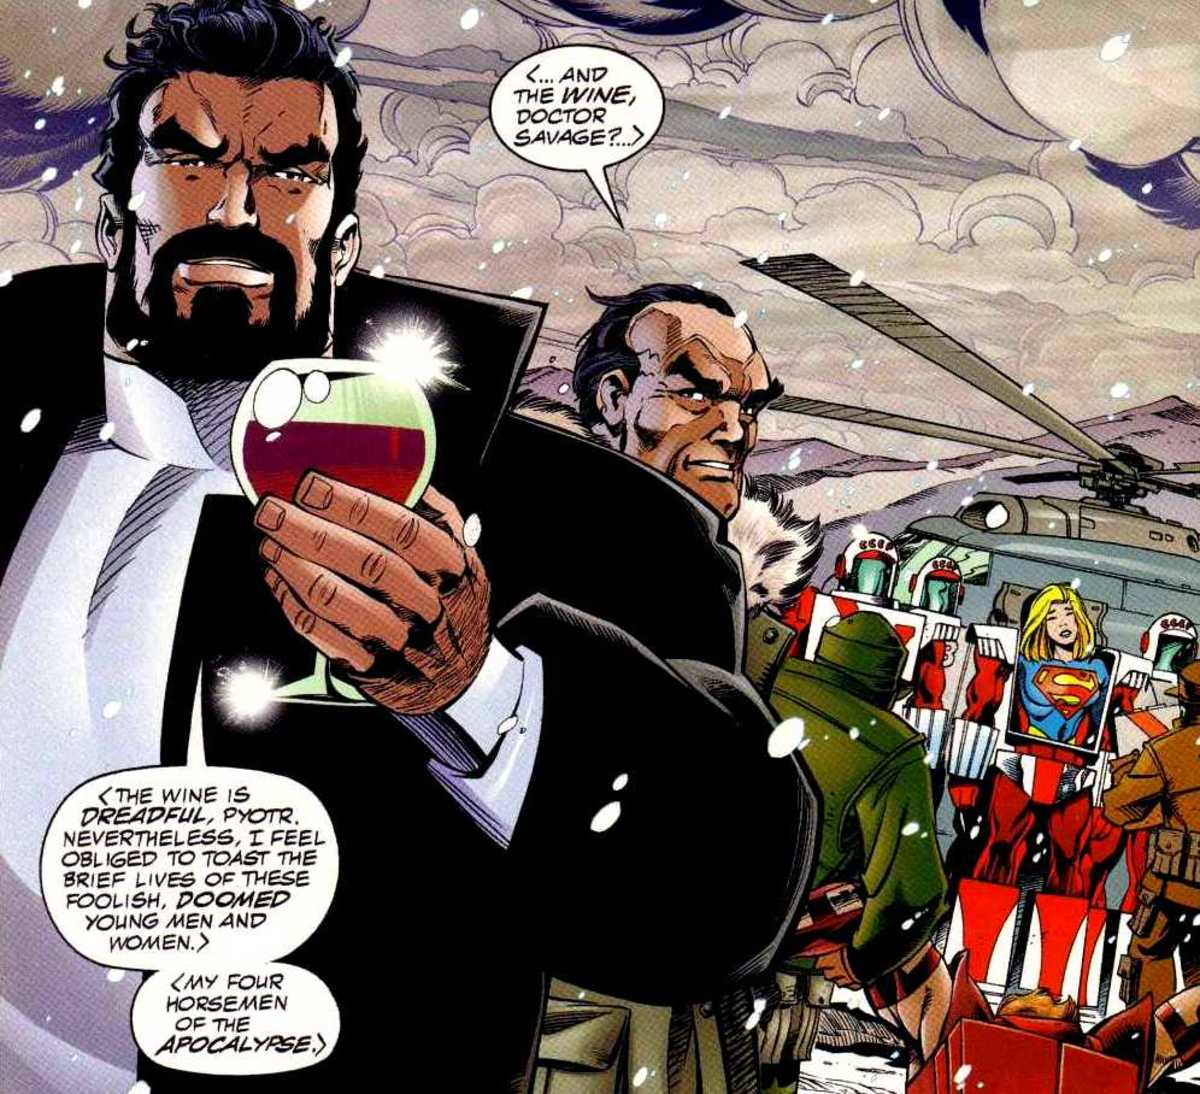 Vandal Savage: Given enough time, you can't help but get rich.